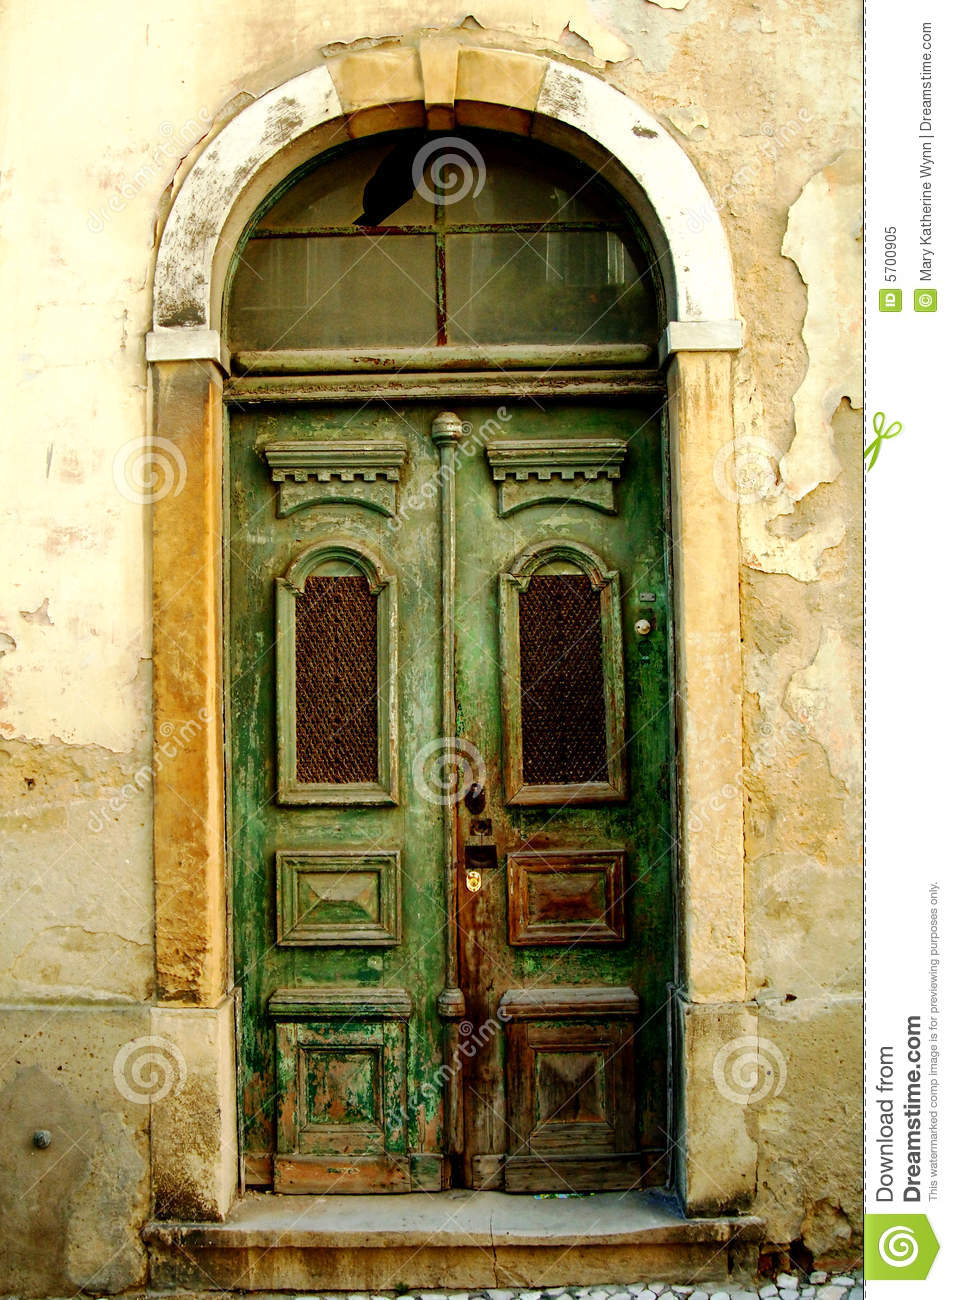 Stock Image Dreamstime Old Fashioned Door Royalty Free Stock Photo Image 5700905